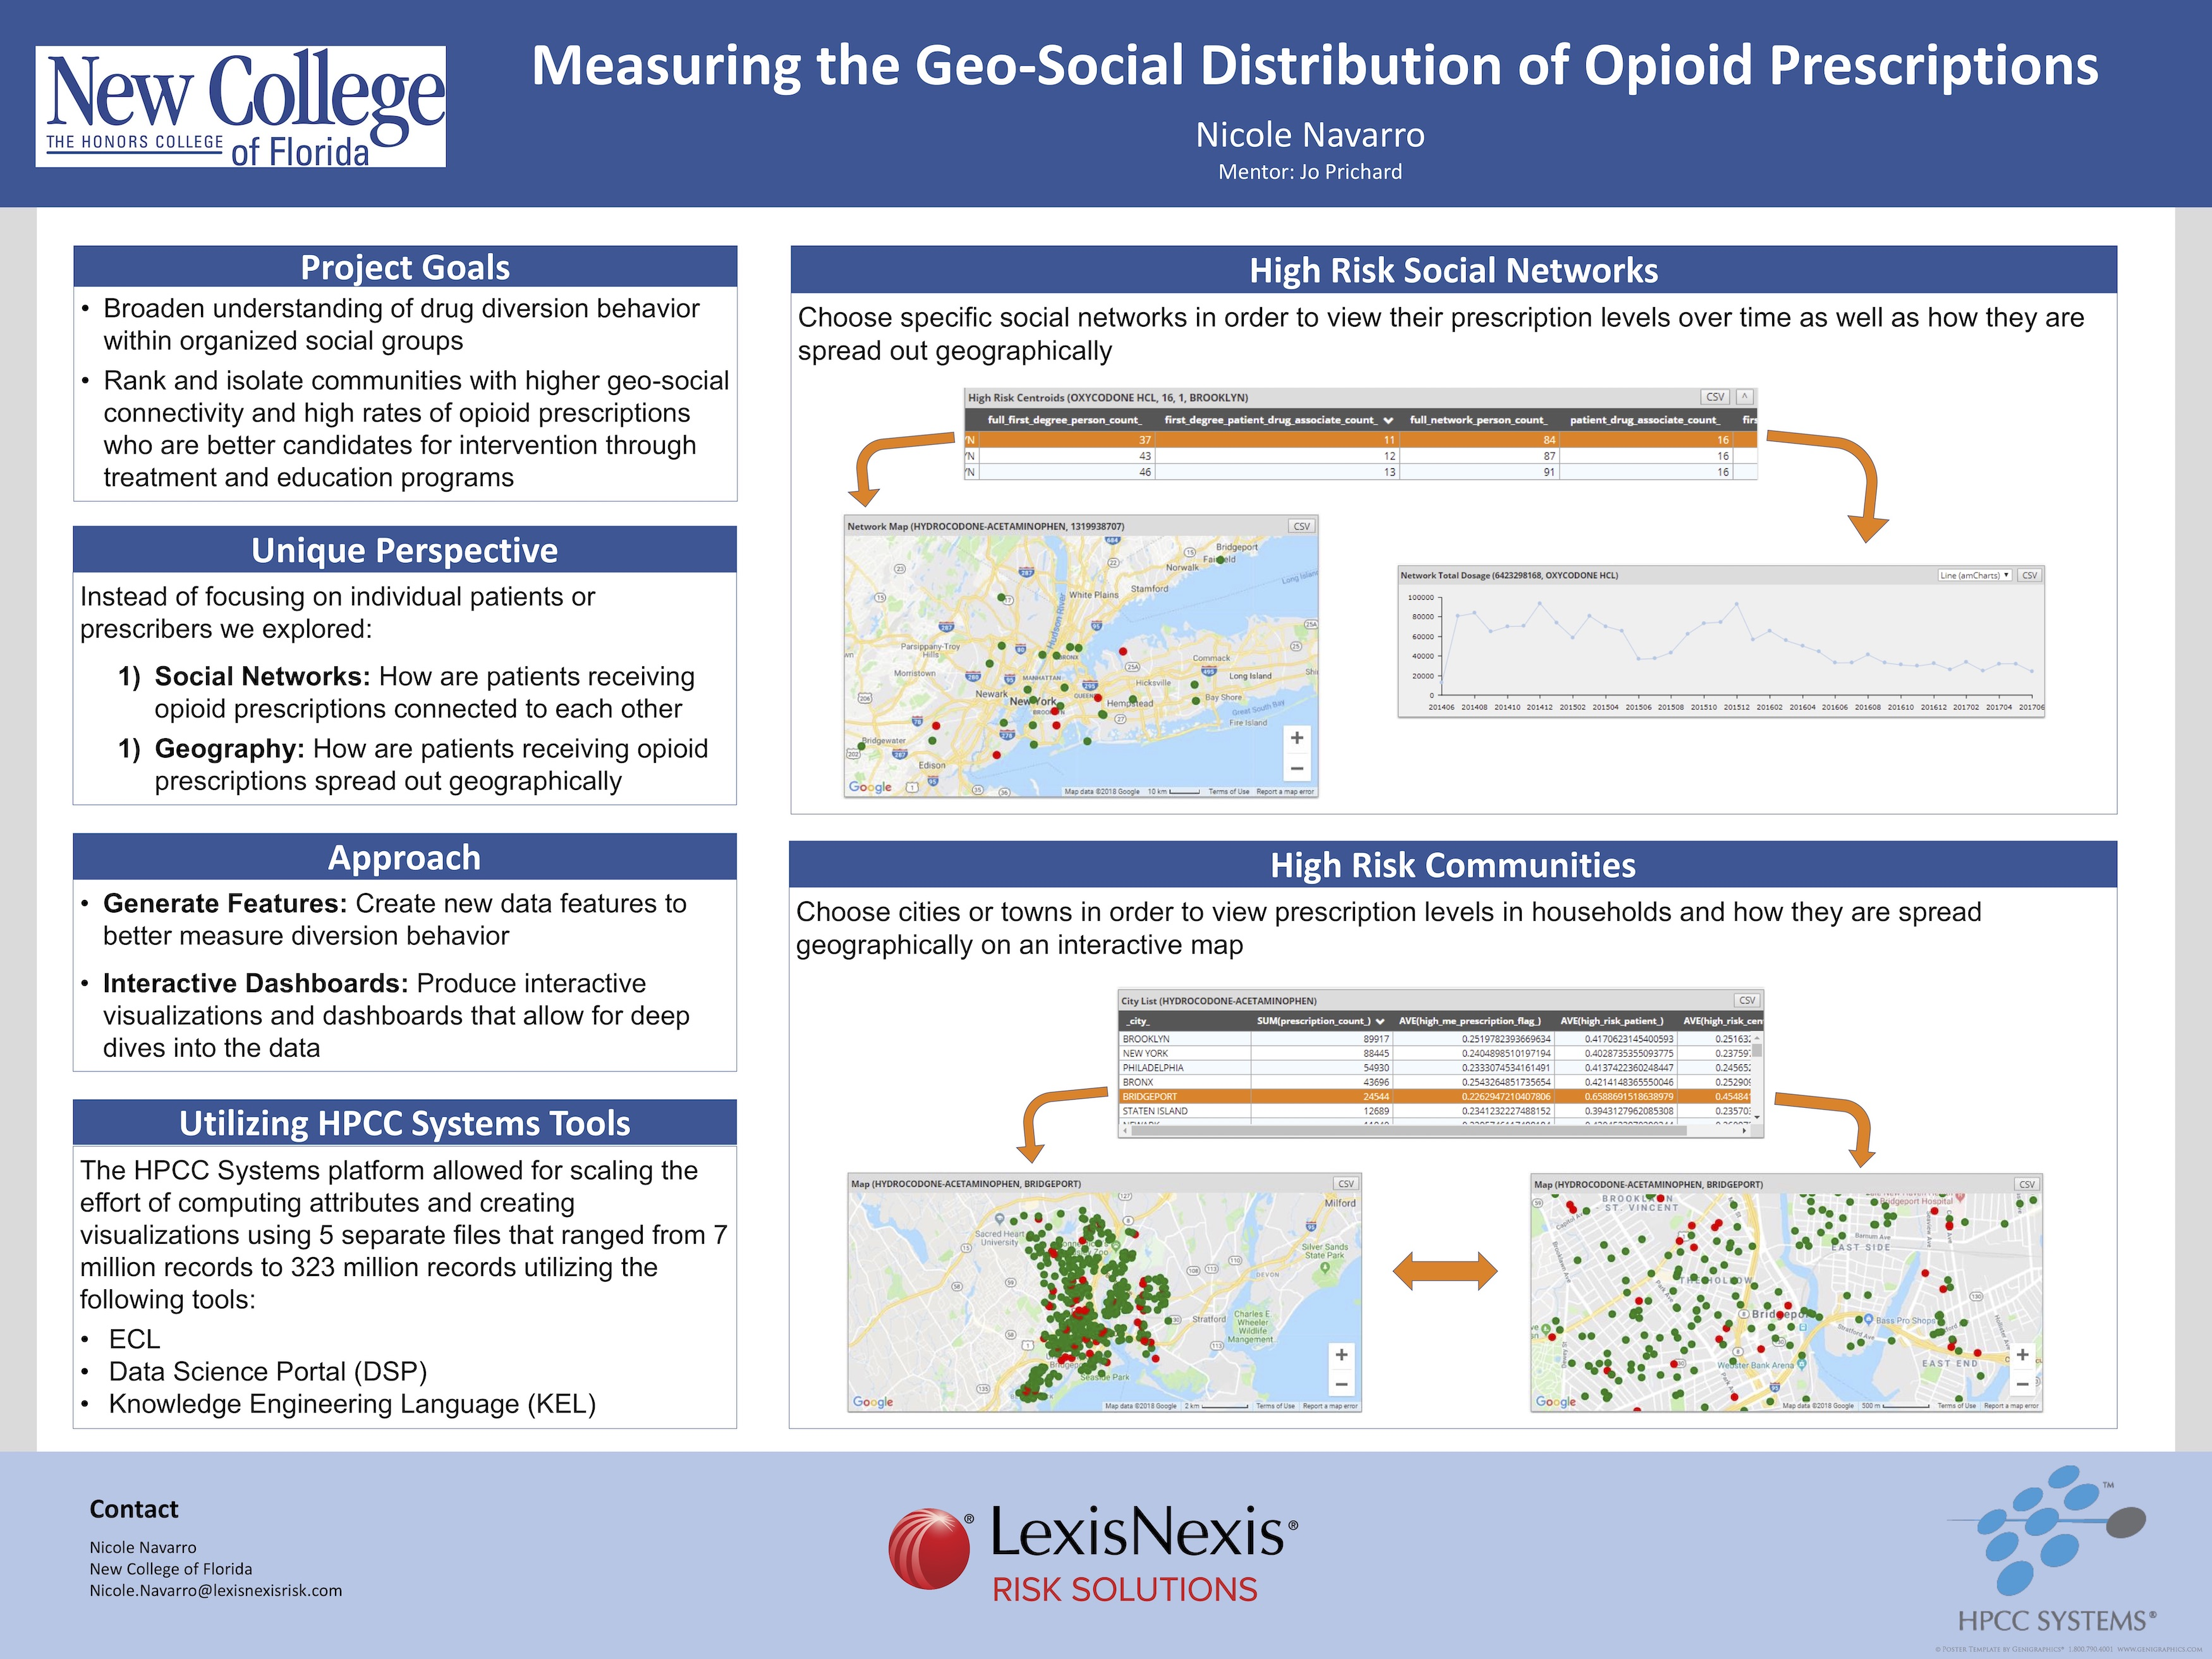 Nicole Navarro - Measuring the geo-social distribution of opioid prescriptions